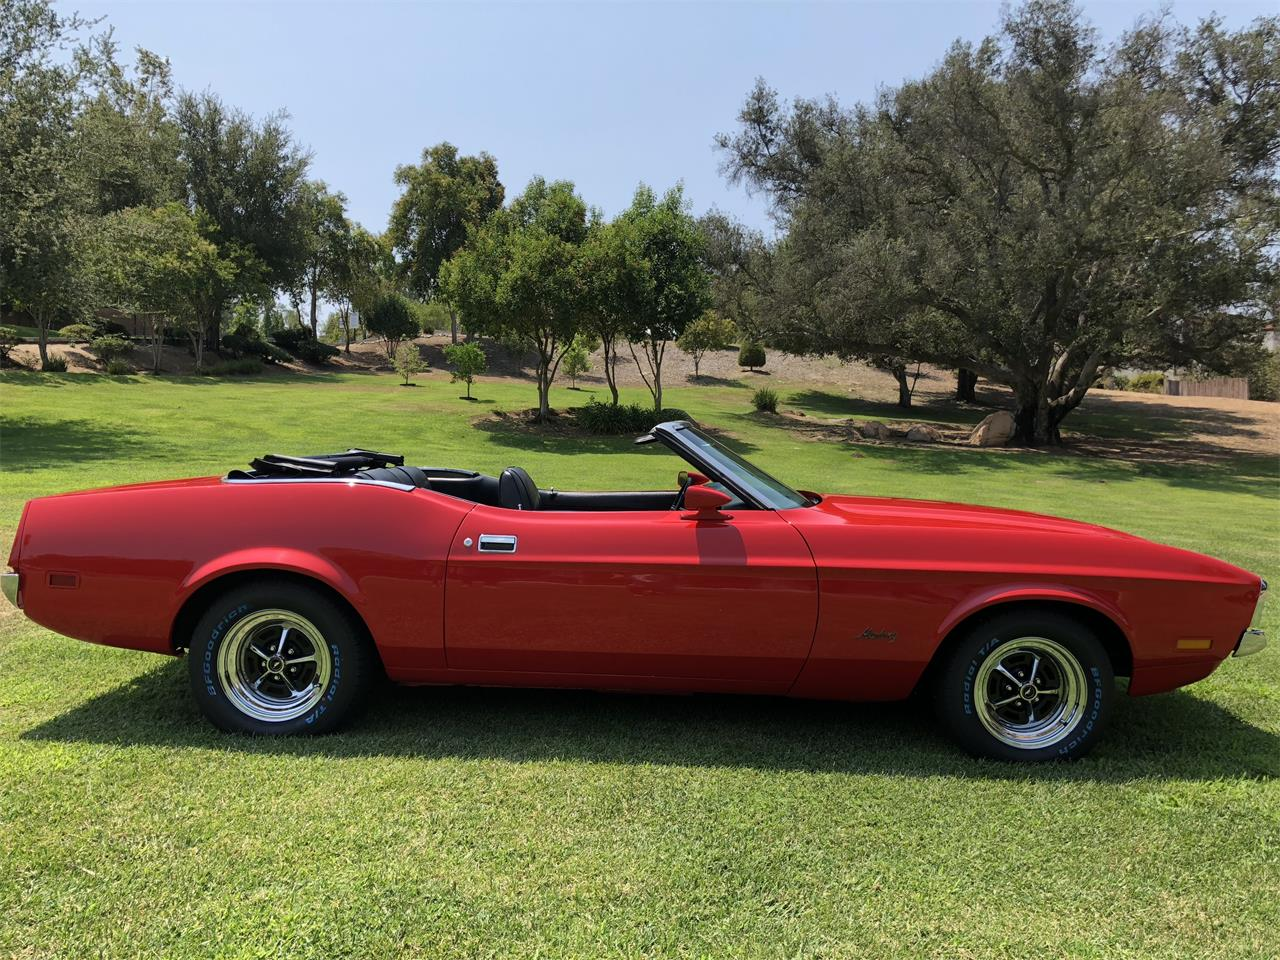 1971 Ford Mustang For Sale In Ramona Ca Classiccarsbay Com